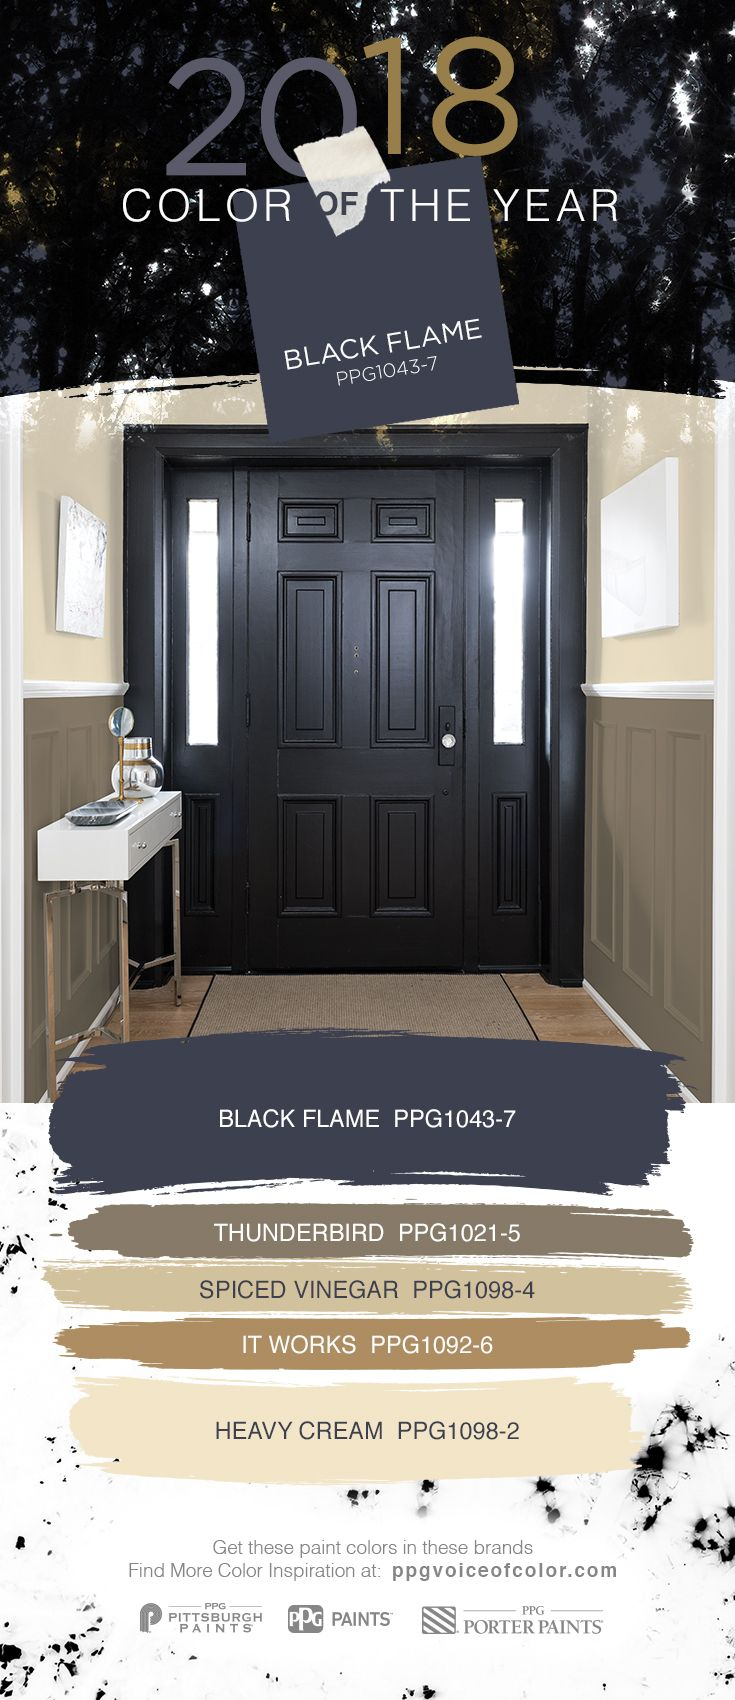 Charmant Stay Ahead Of Your Friends With Taubmansu0027 Picks For Their Colour Of The  Year! Their Colour Of The Year, Black Flame, Will Add That Touch Of  Sophistication ...